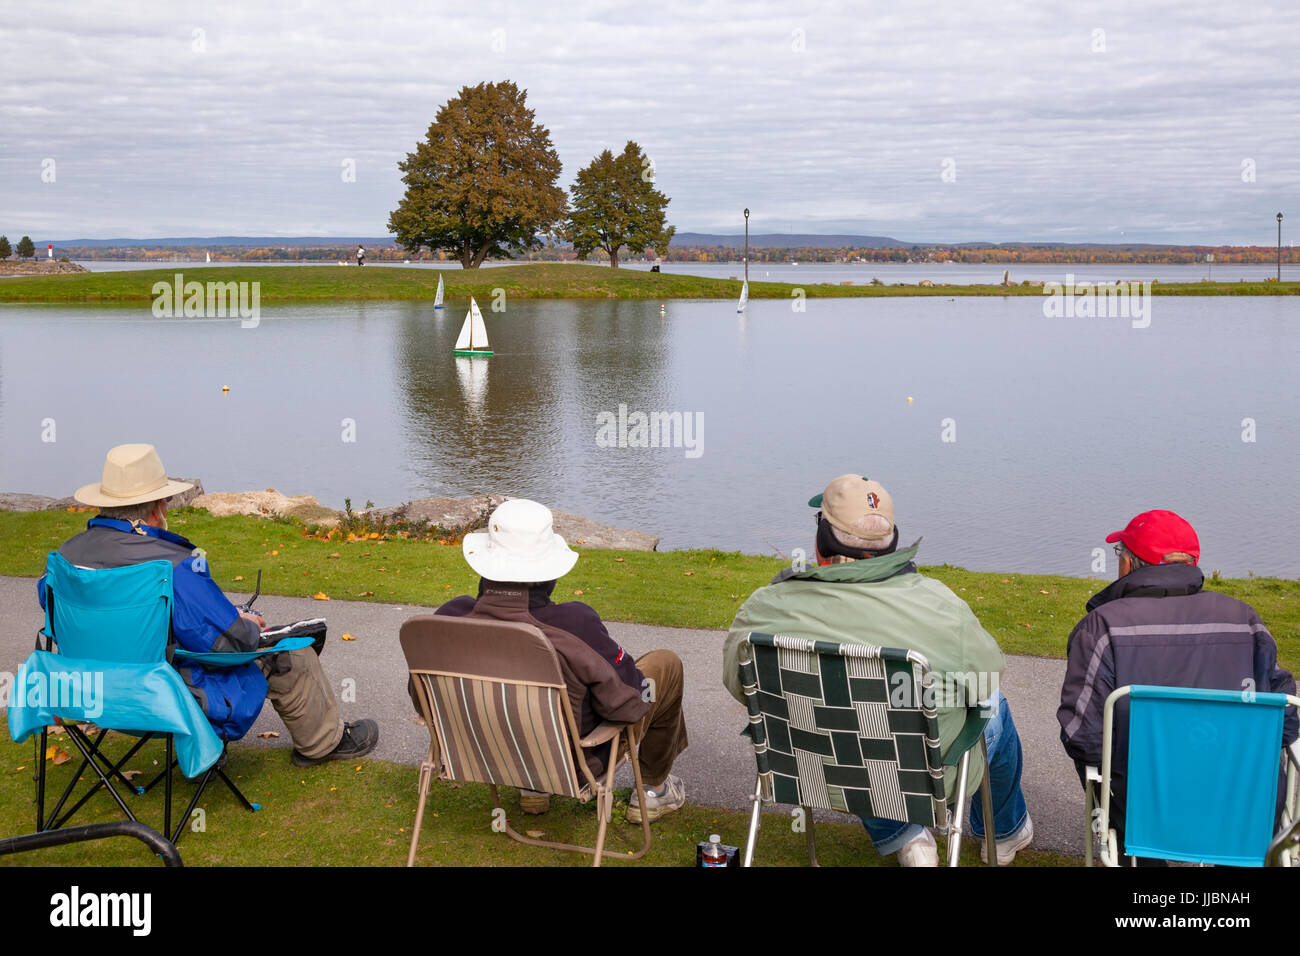 People sitting in chairs using radio controlled boats on a small pond  at Andrew Haydon Park in Ottawa, Ontario, - Stock Image